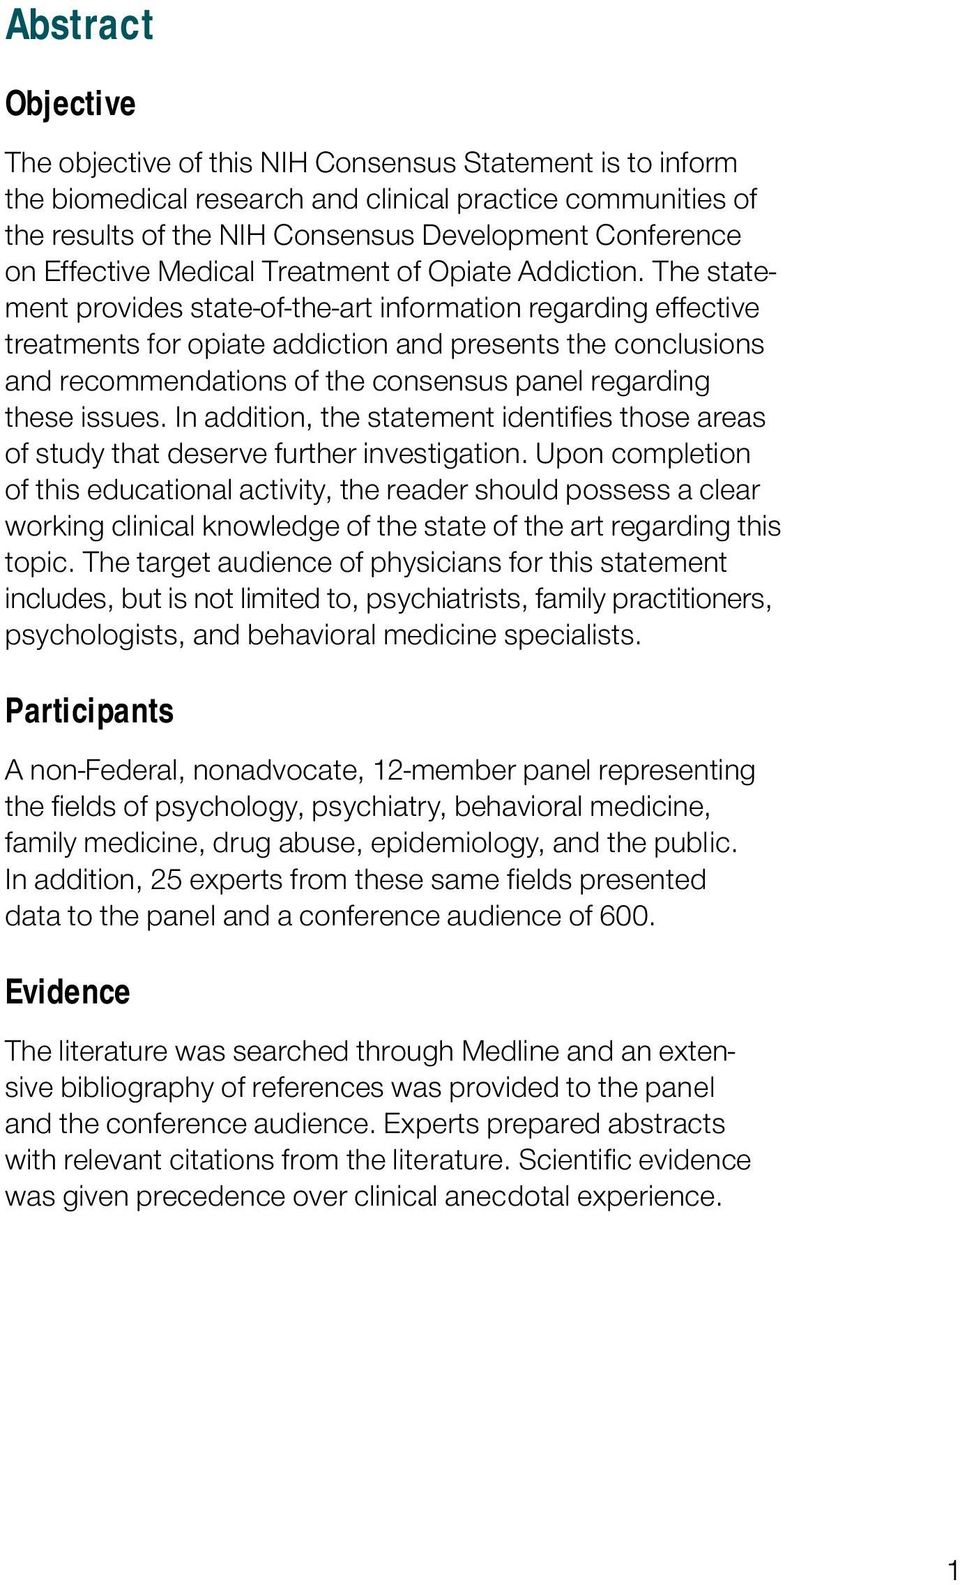 The statement provides state-of-the-art information regarding effective treatments for opiate addiction and presents the conclusions and recommendations of the consensus panel regarding these issues.